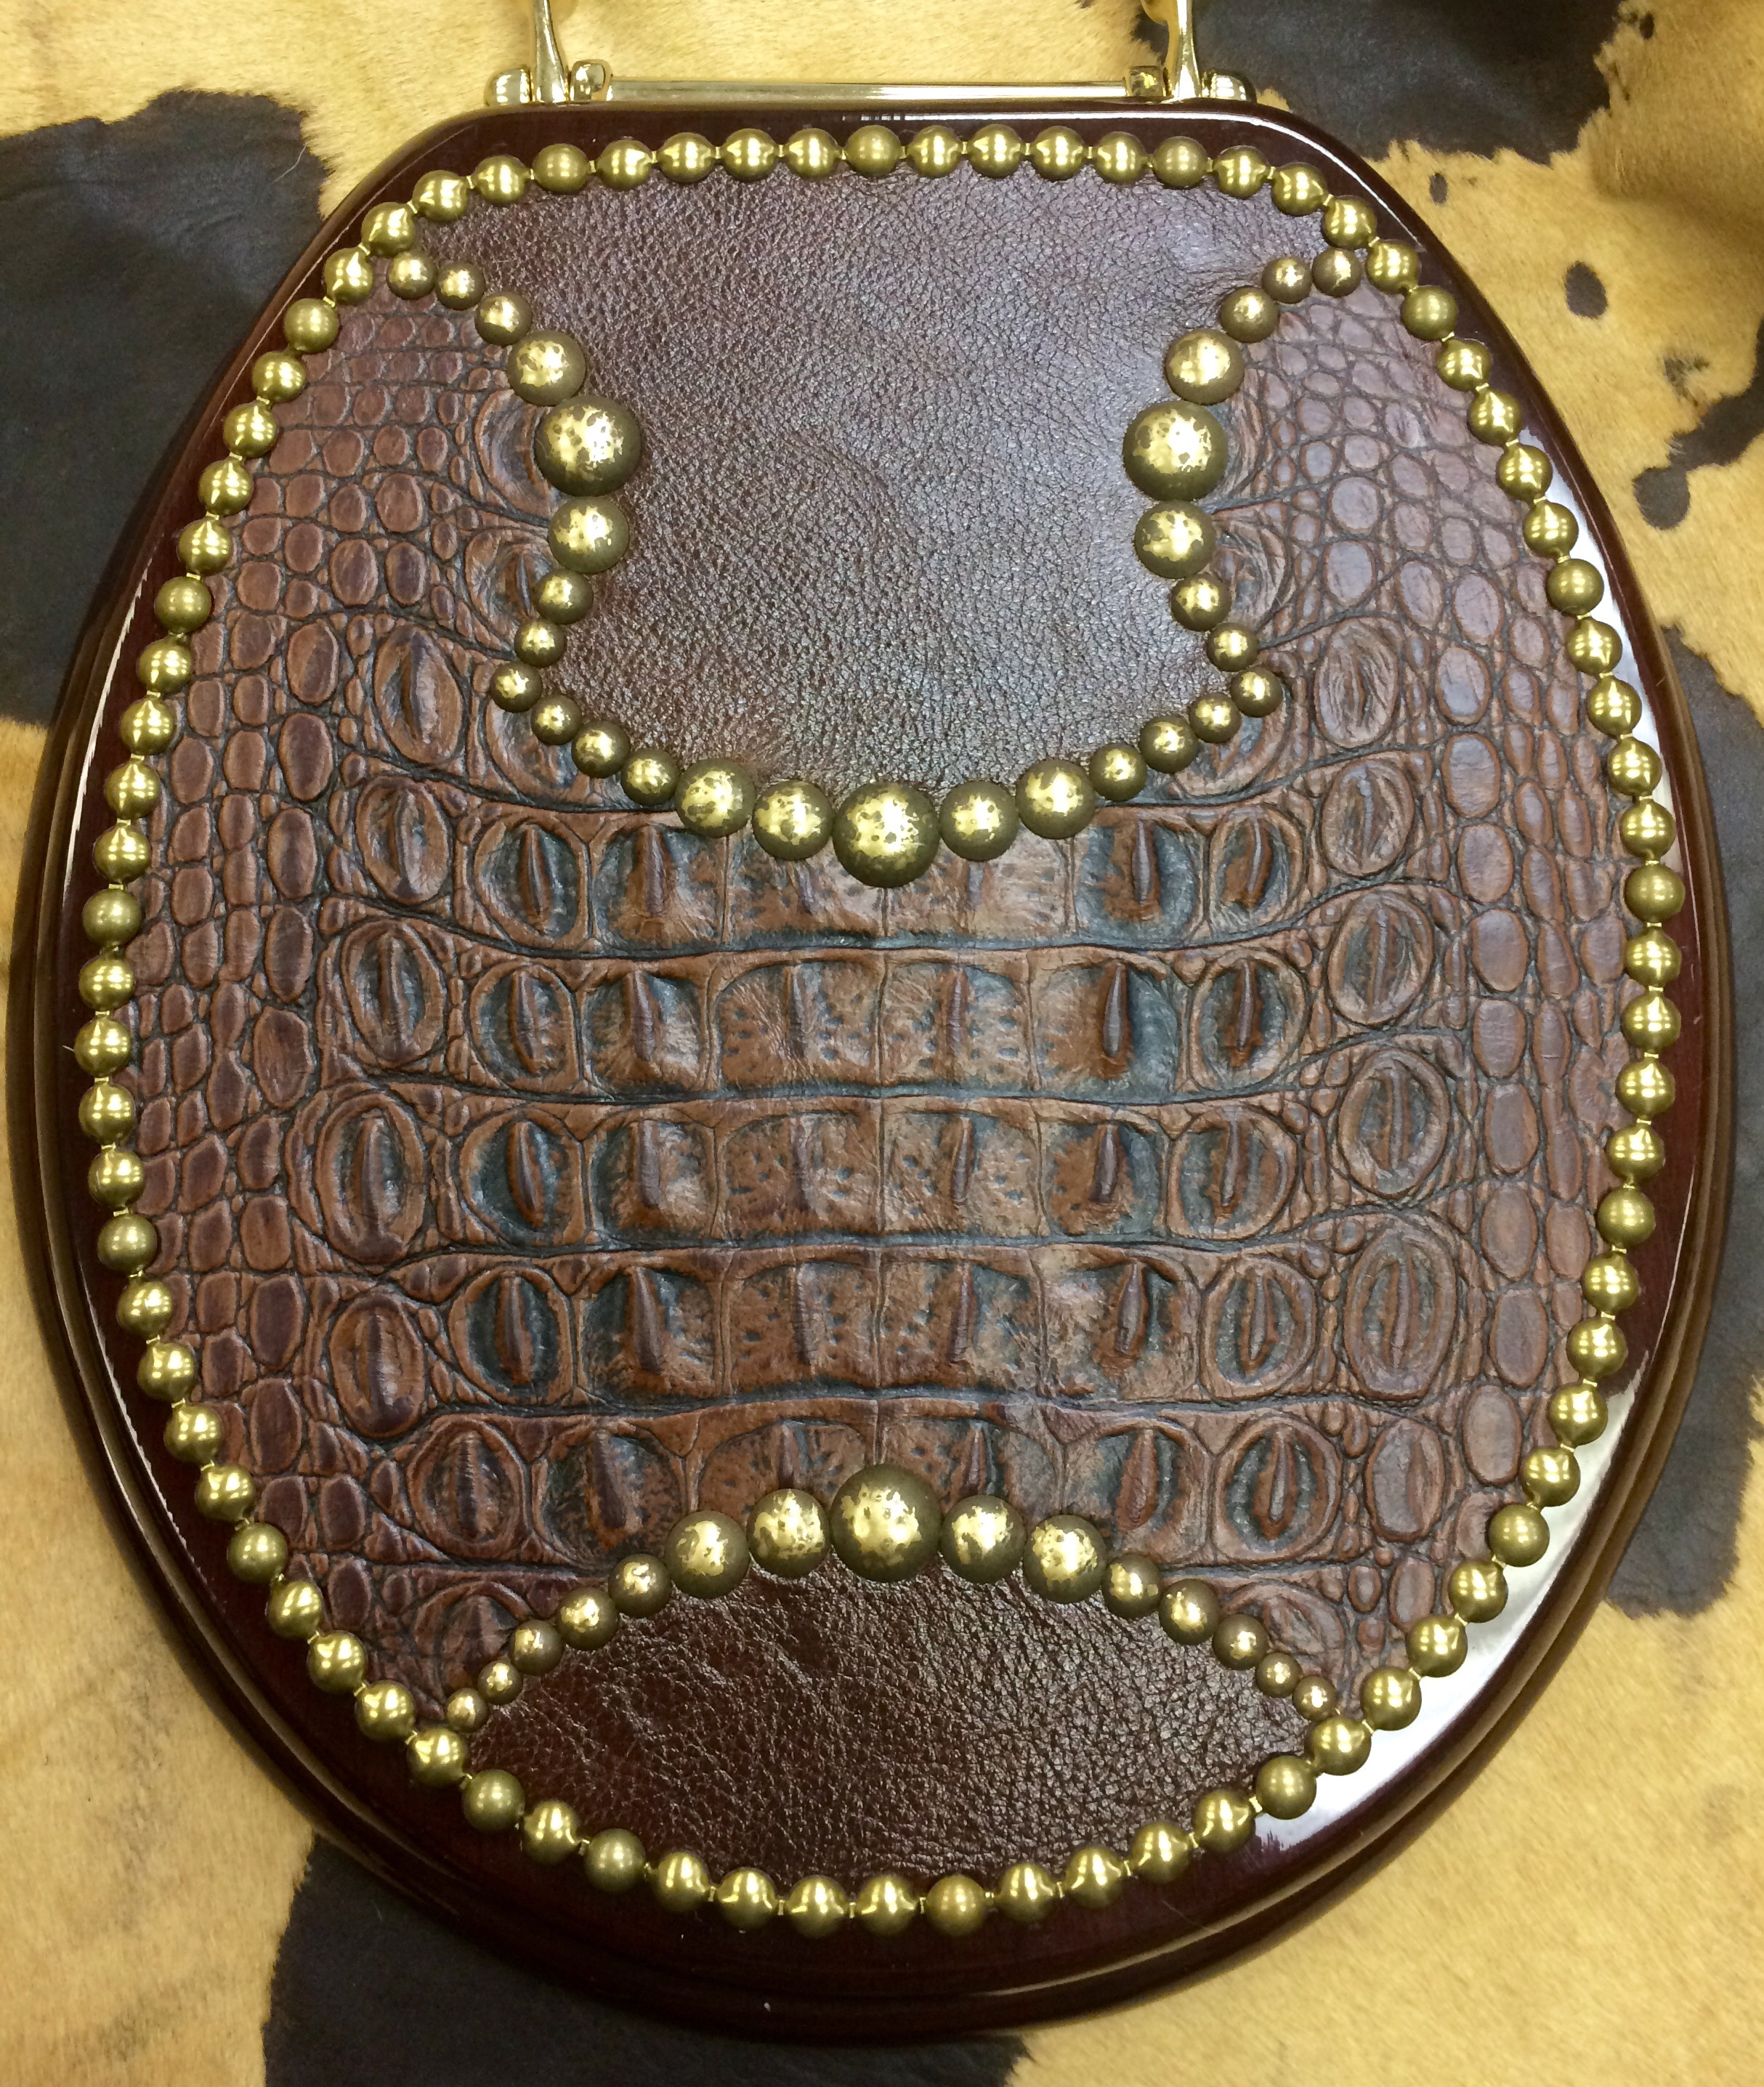 Rustic 100 Genuine Leather Toilet Seat W Decorative Tacking